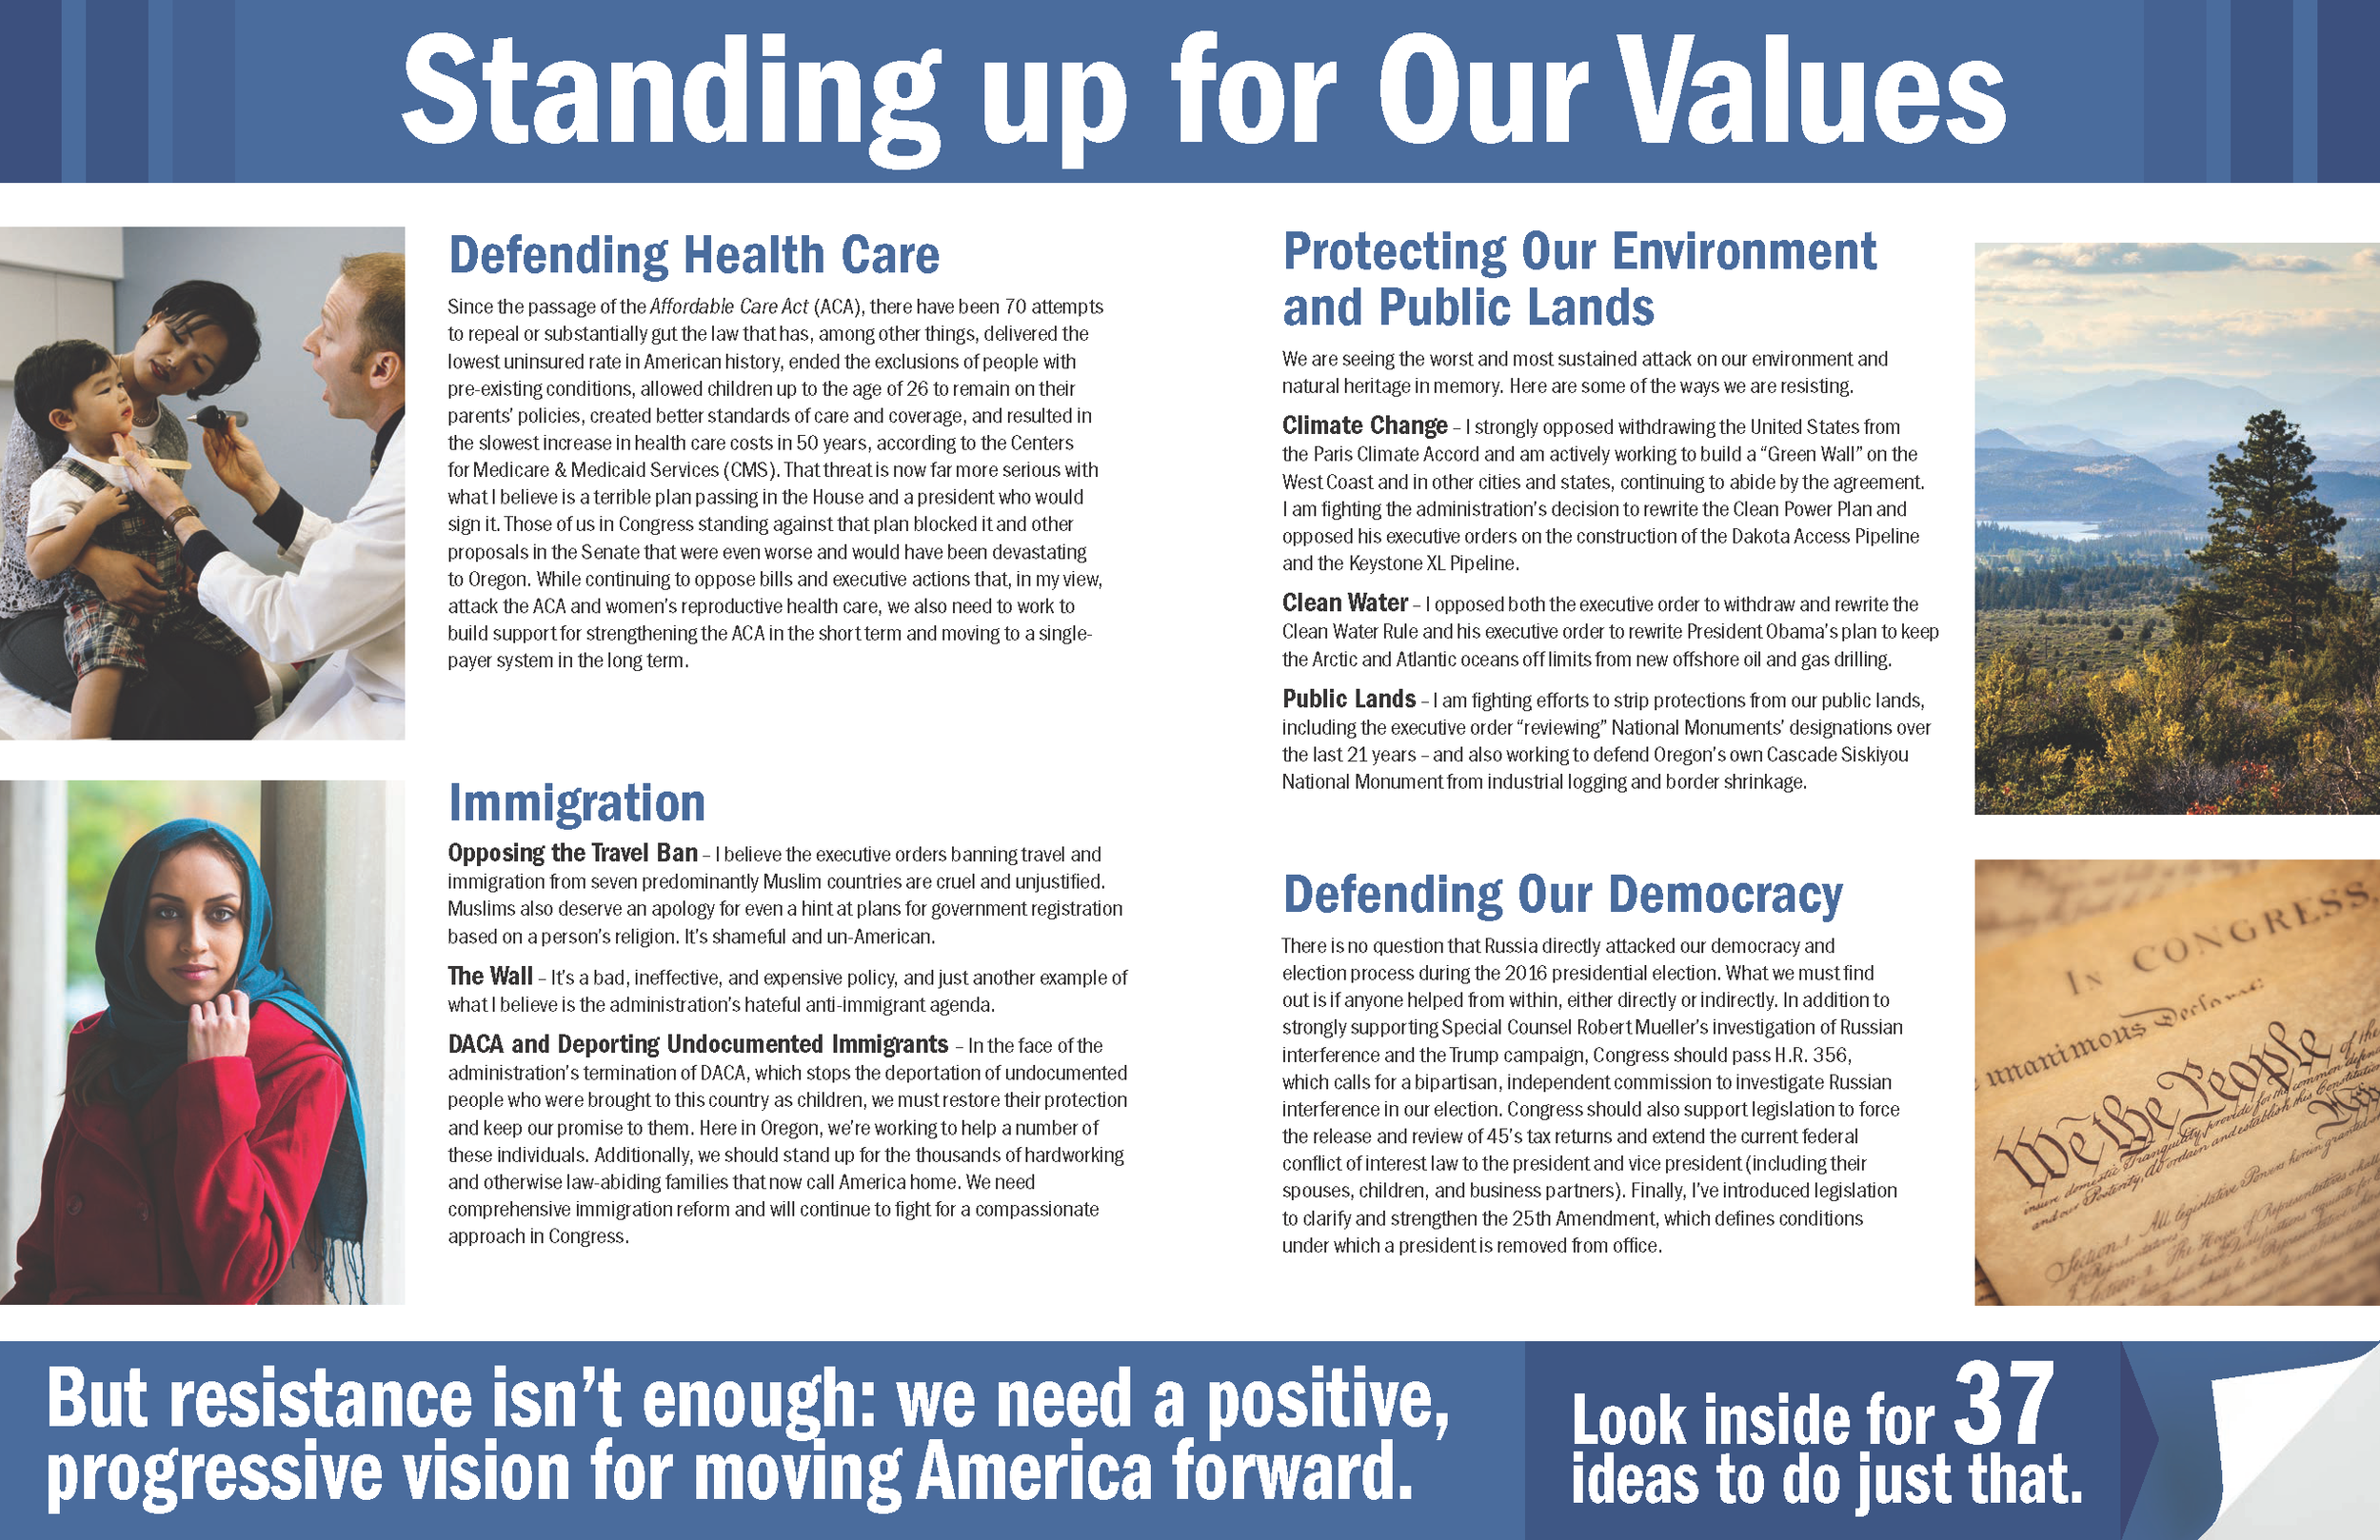 Blumenauer Franked 37 Ideas final_Page_2.png